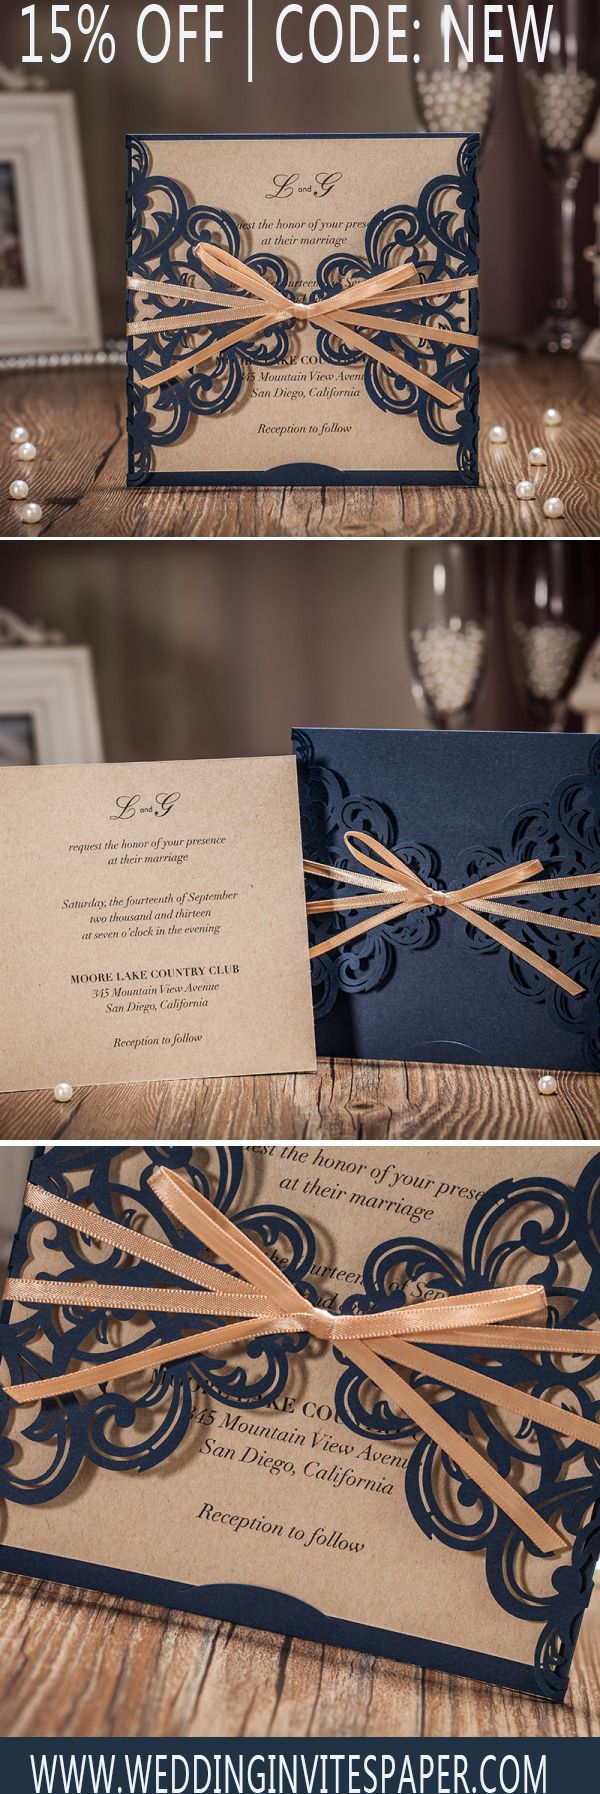 free wedding invitation templates country theme%0A Elegant Navy Blue Laser Cut Wedding Invitations With Ribbon WLC